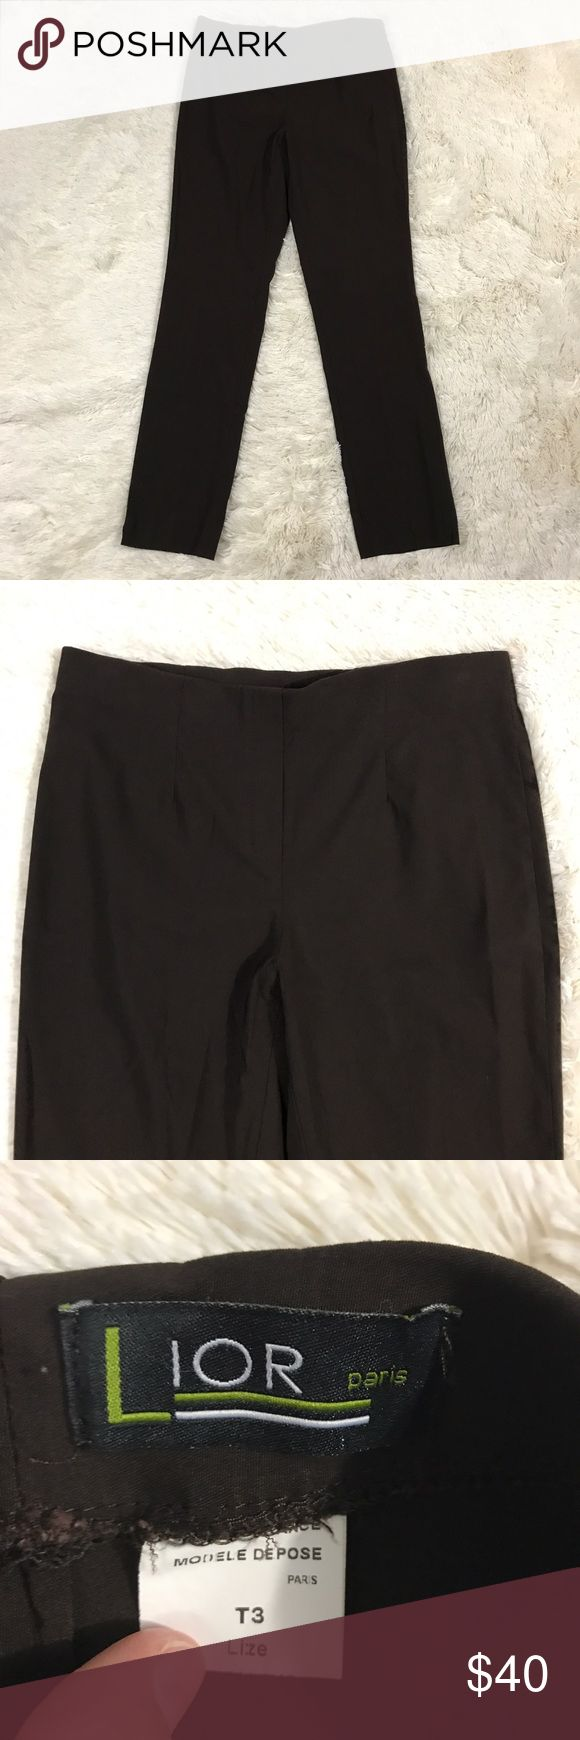 "🇺🇸SALE🇺🇸Lior Paris Lize Dress Pants Size 6/8 Women's size T3 (Euro sized - equals US 6/8) brown Lion Paris Lize stretch straight leg, pull on, dress pants. 77% viscose, 20% polyamide, 3% elasthanne. Comes from a smoke free home!  Measurements:  Waist - 15 1/2"" (stretch waist) Length - 38 1/2"" Inseam - 29 1/2""  I have another pair of these in my store that are the same size. I would be happy to make a great deal if you would like to purchase both! Lior Pants Straight Leg"